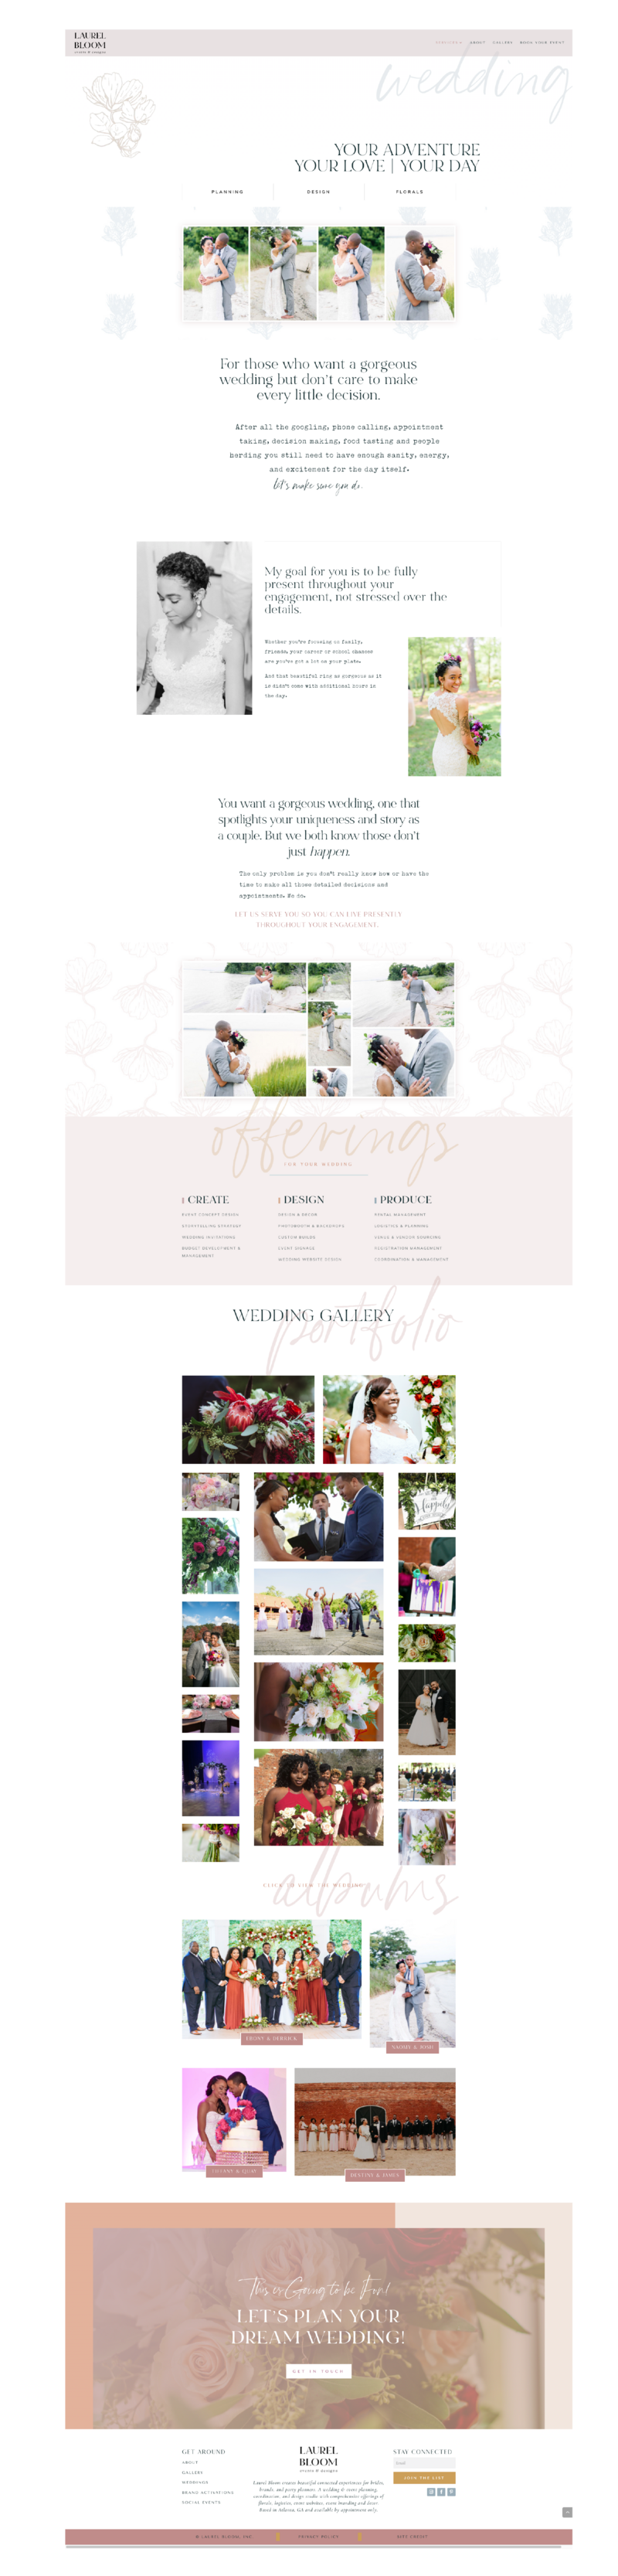 1Weddings_Laurel_Bloom_Atlanta_Wedding_Planner_Event_Design-01